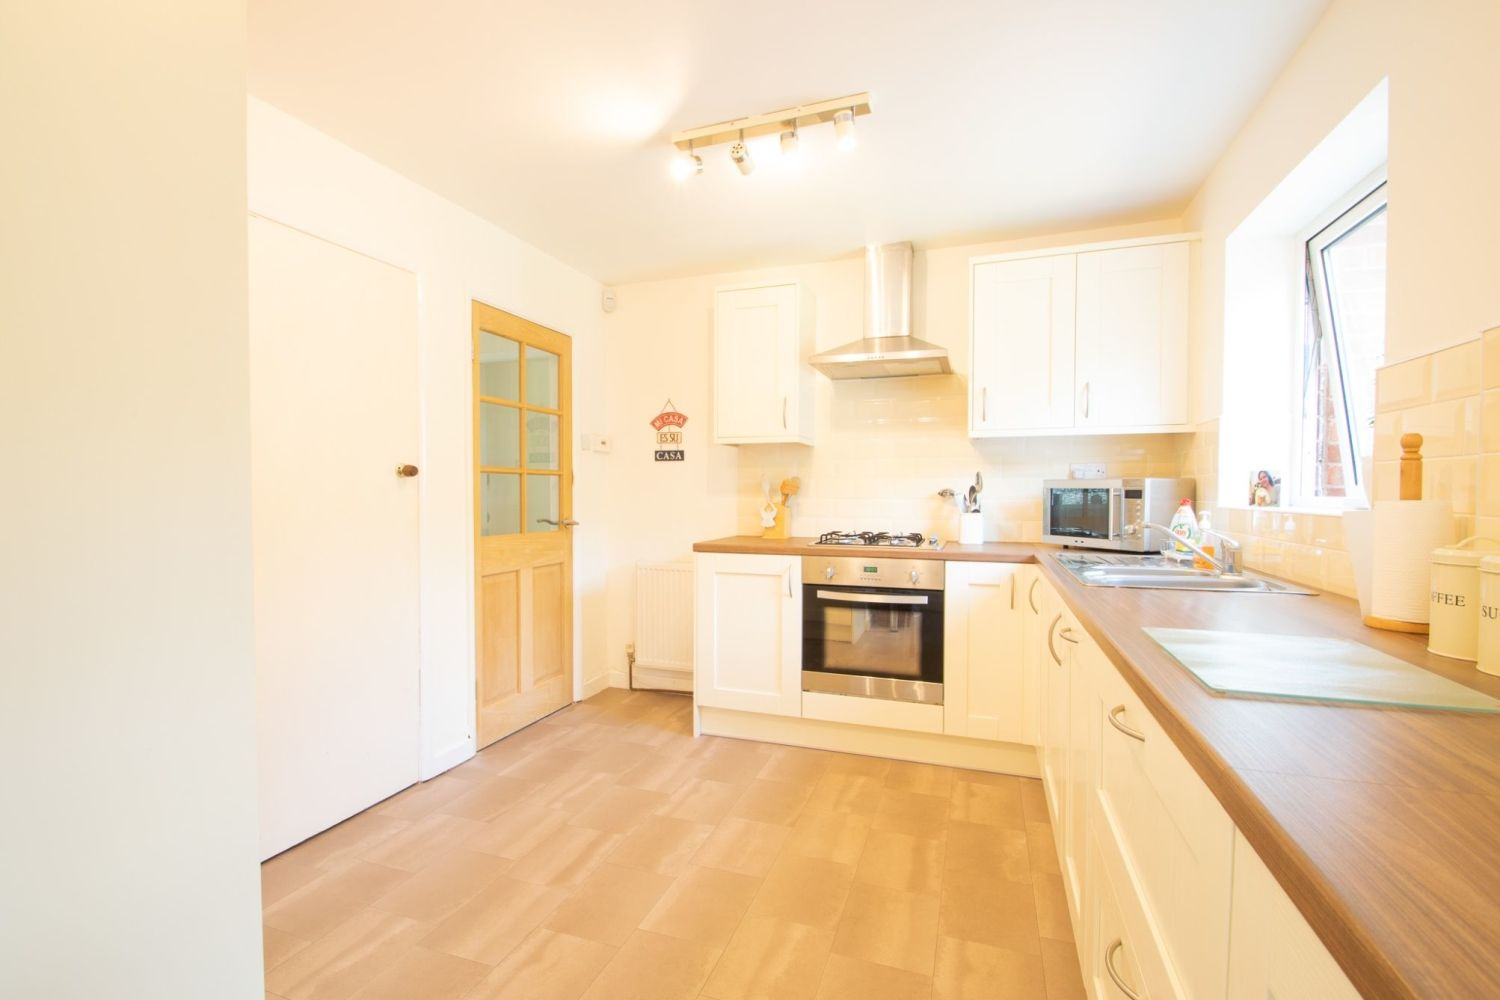 3 bed semi-detached for sale in High Haden Crescent, Cradley Heath  - Property Image 9